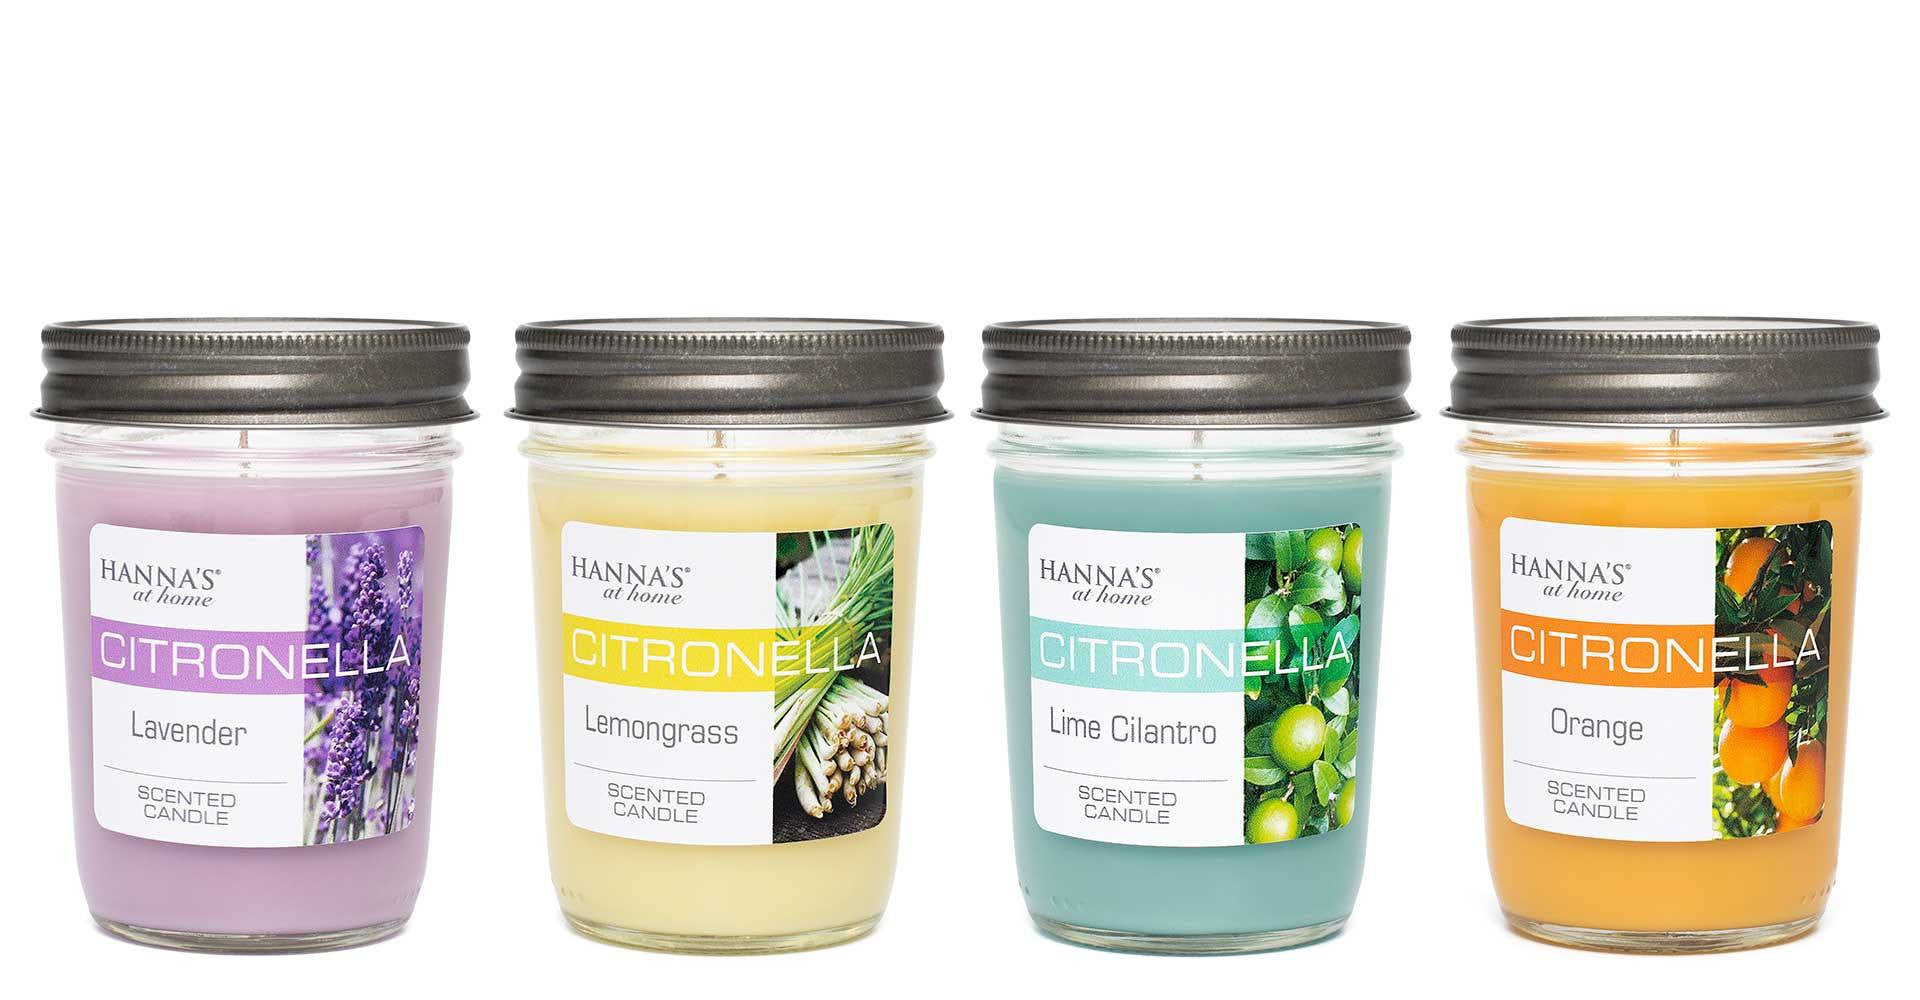 Citronella Lime Cilantro Scented Half Pint Jar Candle Candles Candlemart.com $ 6.99